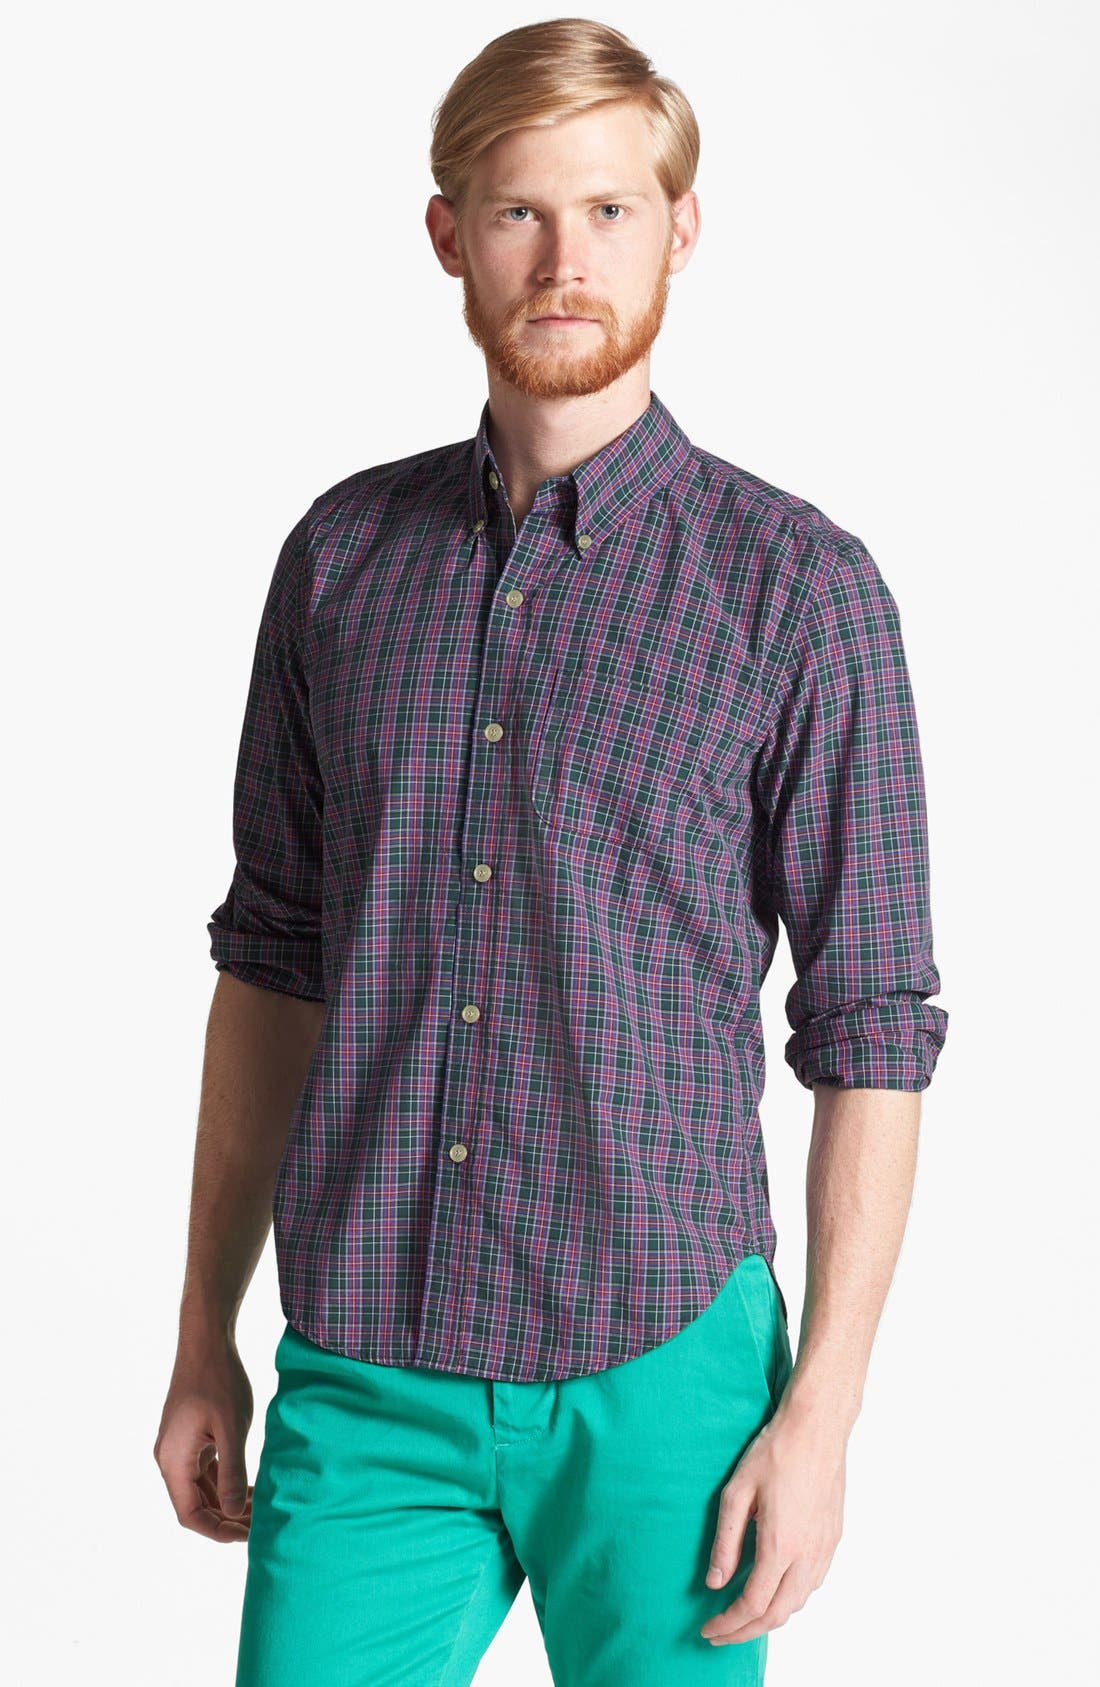 Alternate Image 1 Selected - Band of Outsiders 'Ranger' Plaid Cotton Shirt